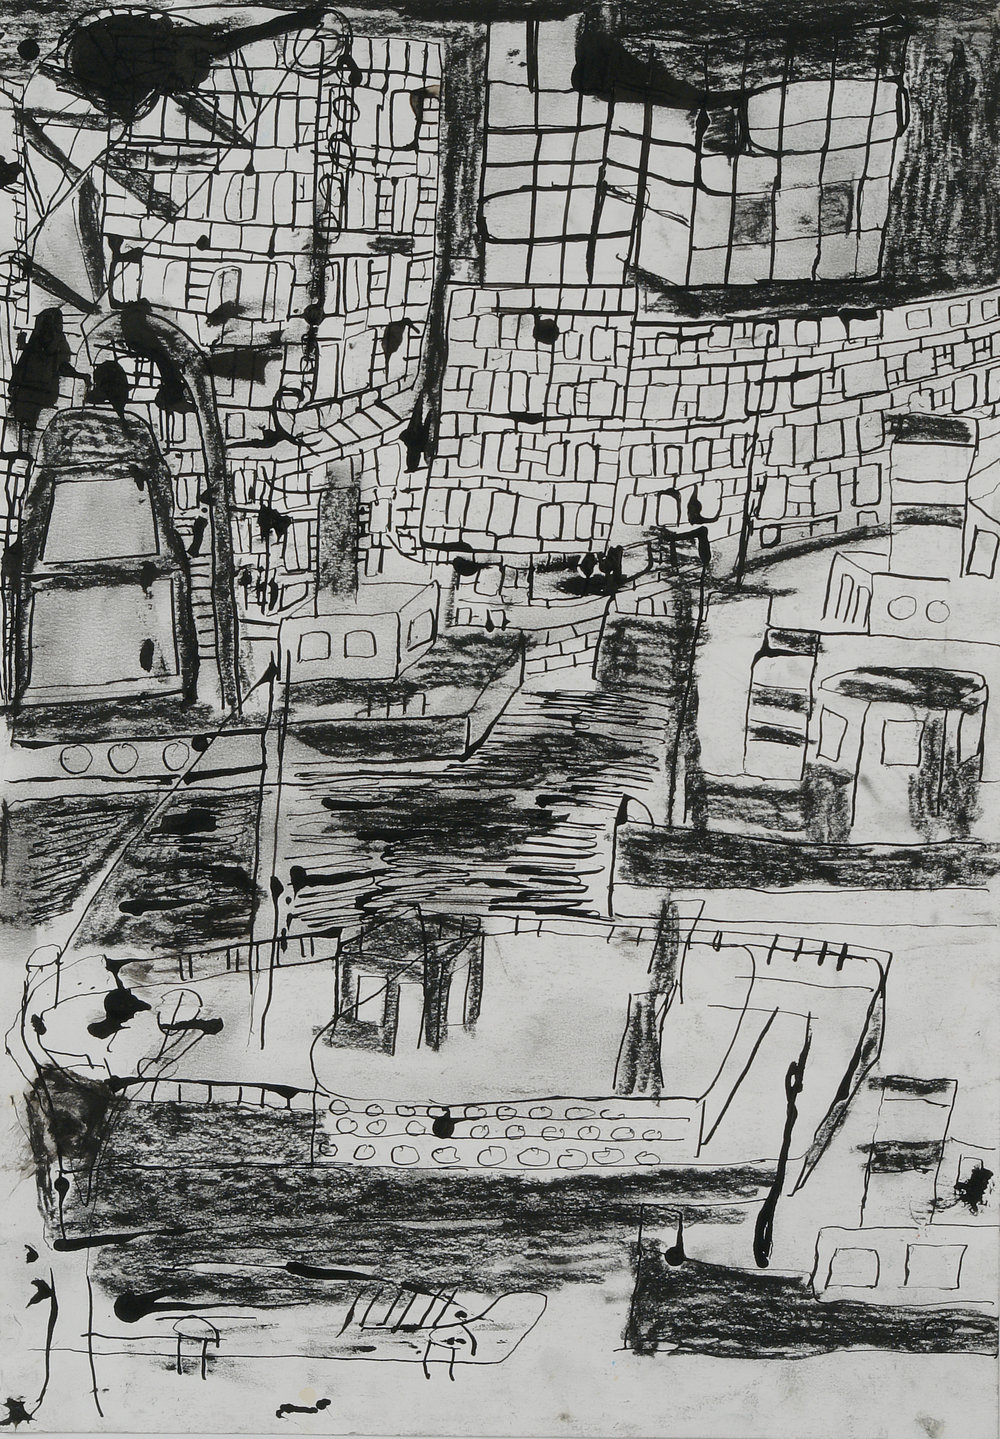 Jaco Kranendonk (Ducth, b. 1951).  De haven van Schiedam (Two Ships) , August 11, 1987. Ink on paper, 12 x 20 in. Intuit: The Center for Intuitive and Outsider Art, Gift of Galerie Atelier Herenplaats, Rotterdam, Netherlands, 2004.43.10